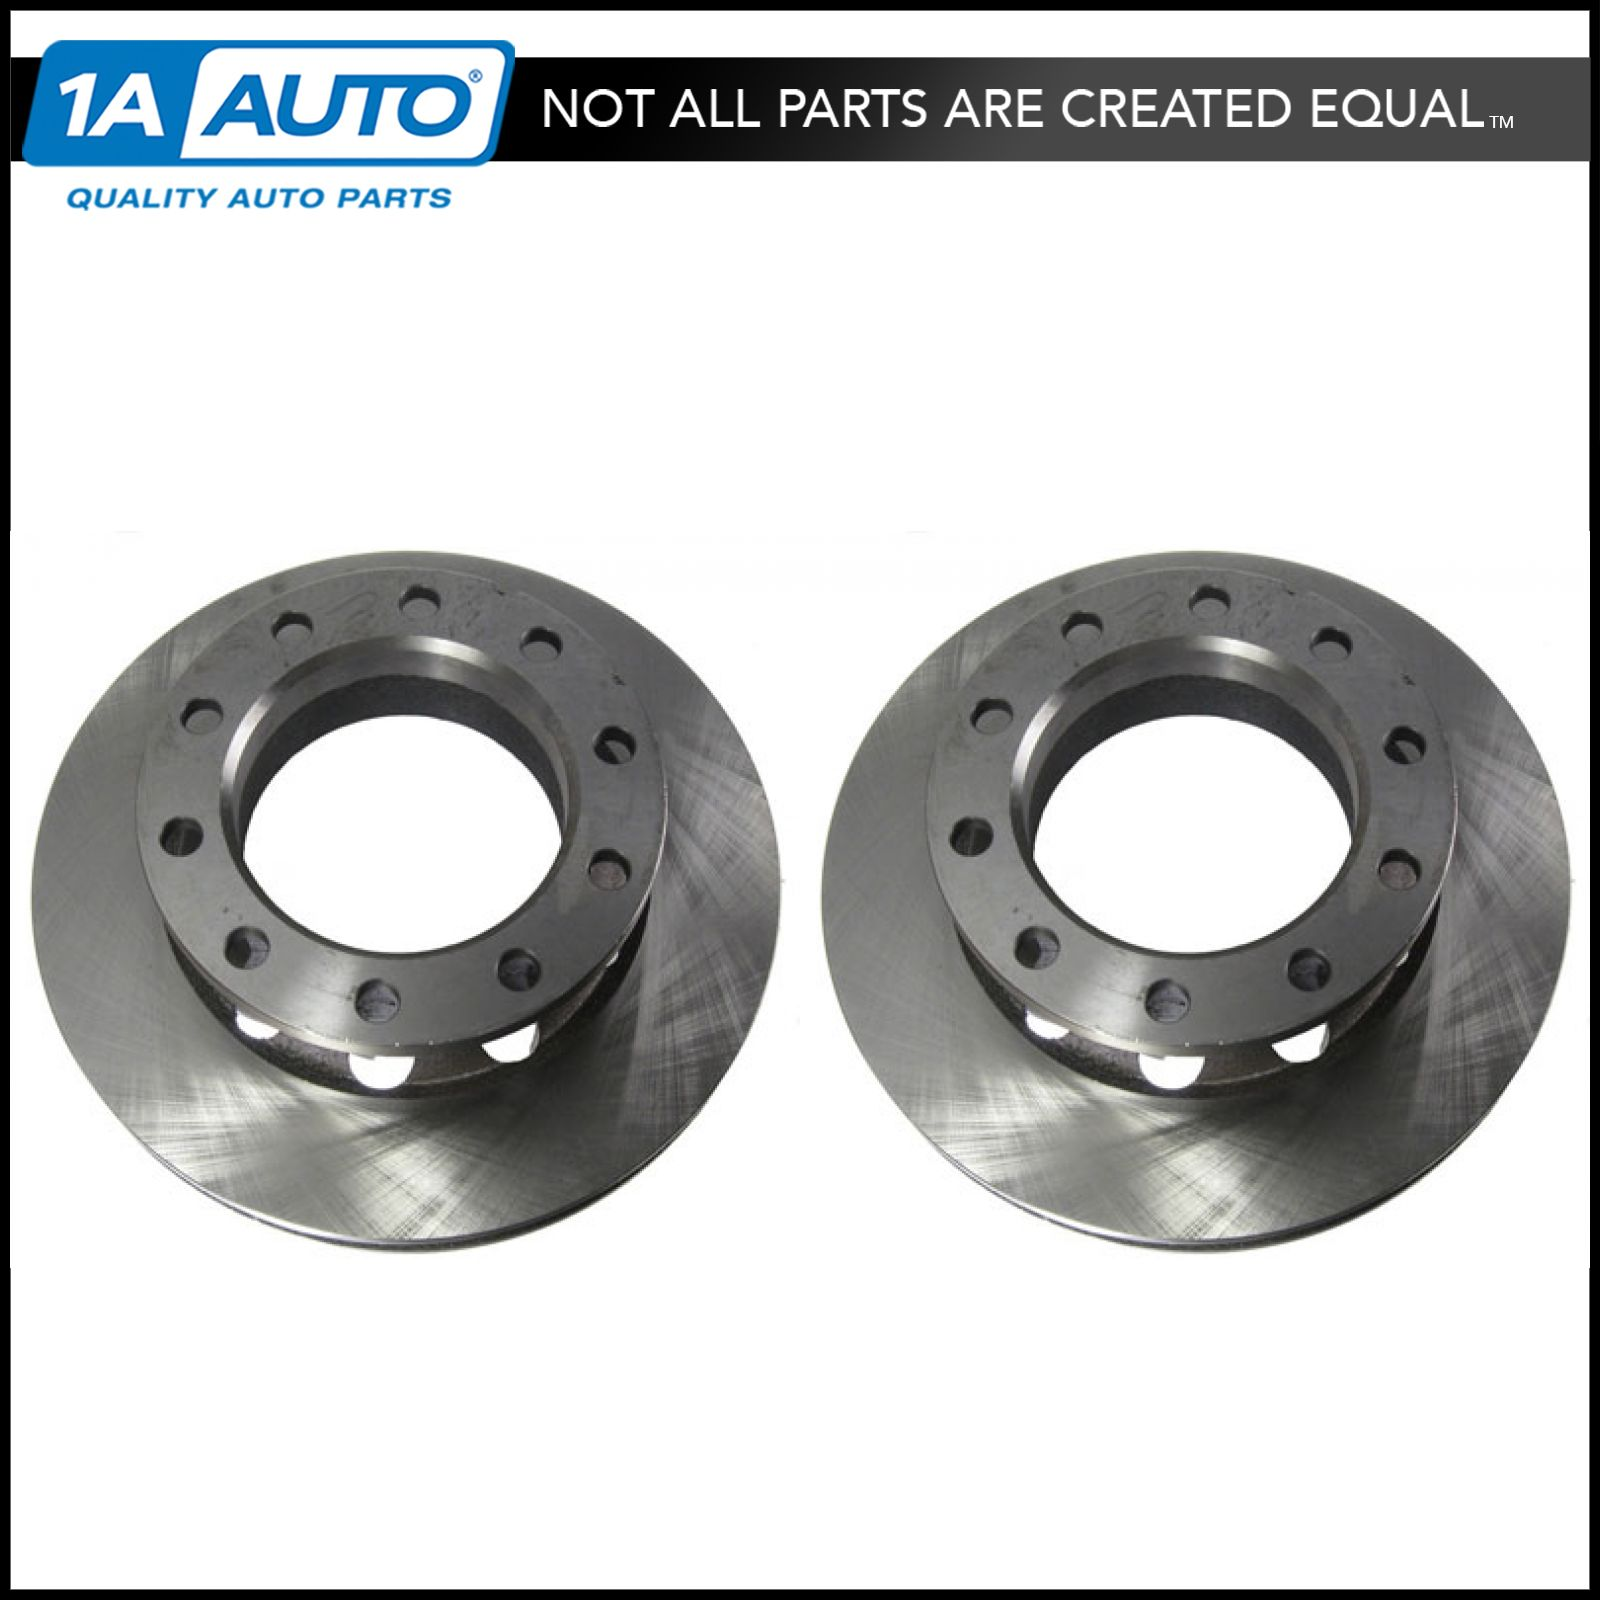 1997 Chevrolet G Series 3500 Camshaft: Rear Disc Brake Rotor Pair Set For Chevy GMC C3500 Truck